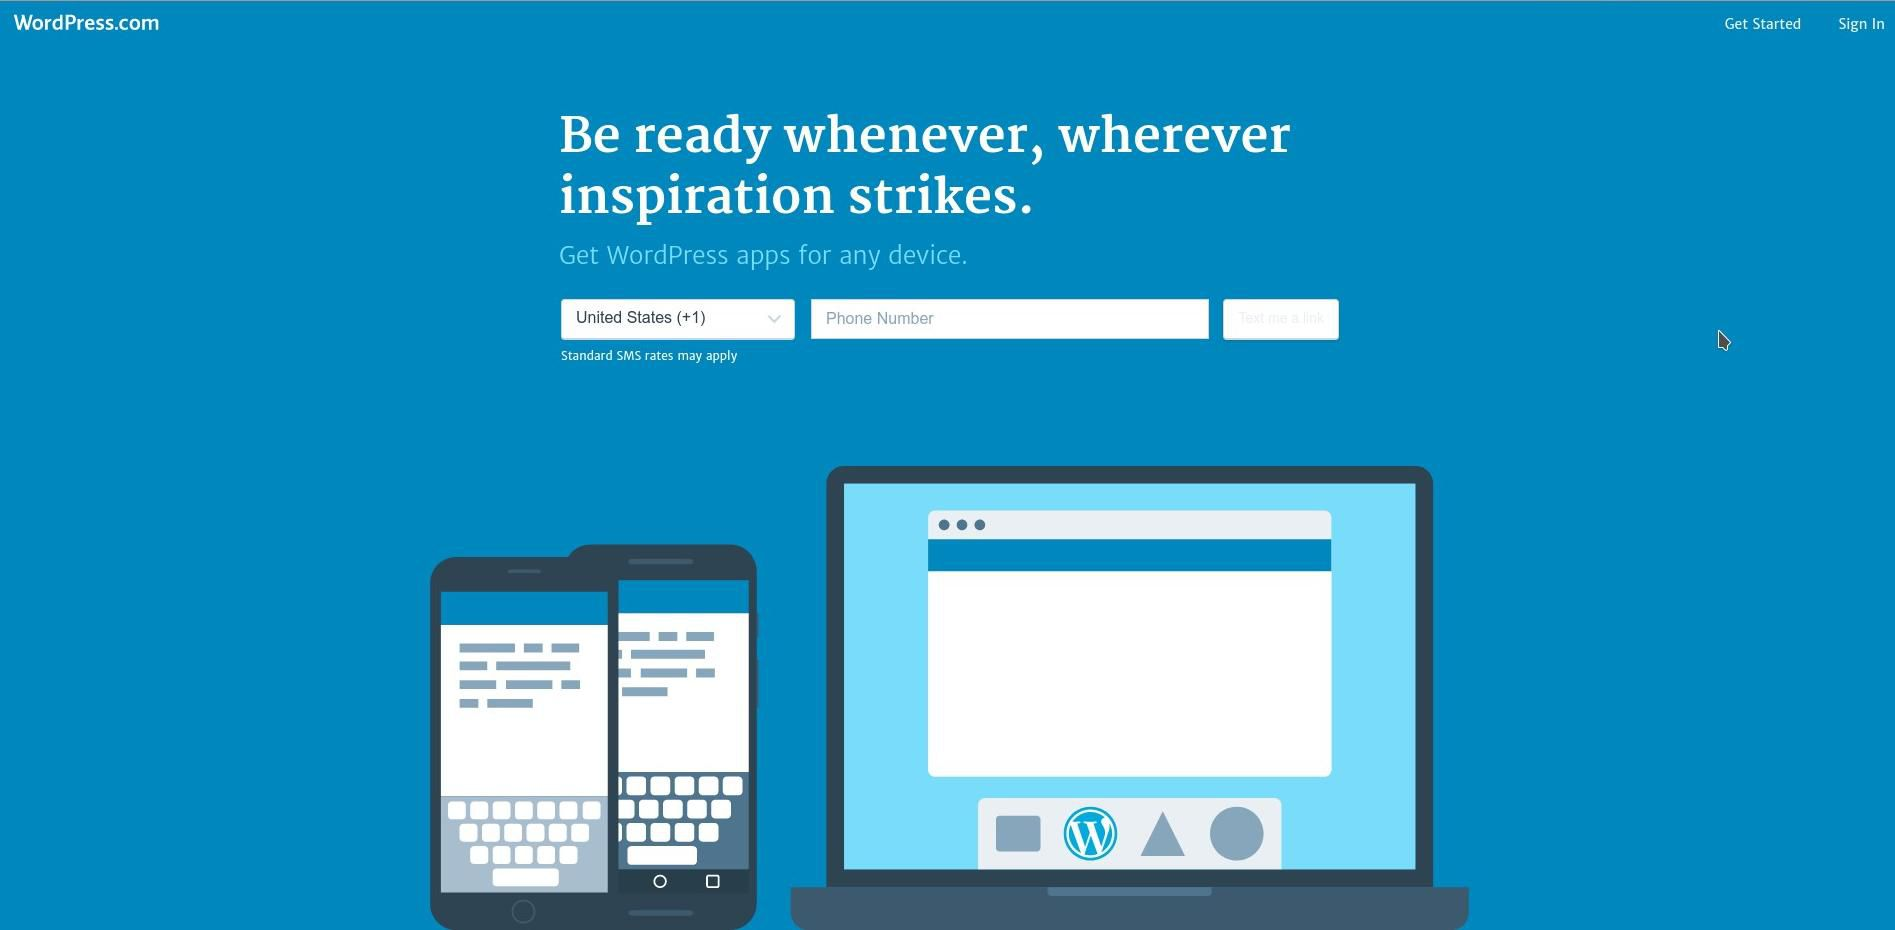 A Hosted Blog on WordPress.com Is a Great Way to Start Blogging For Free